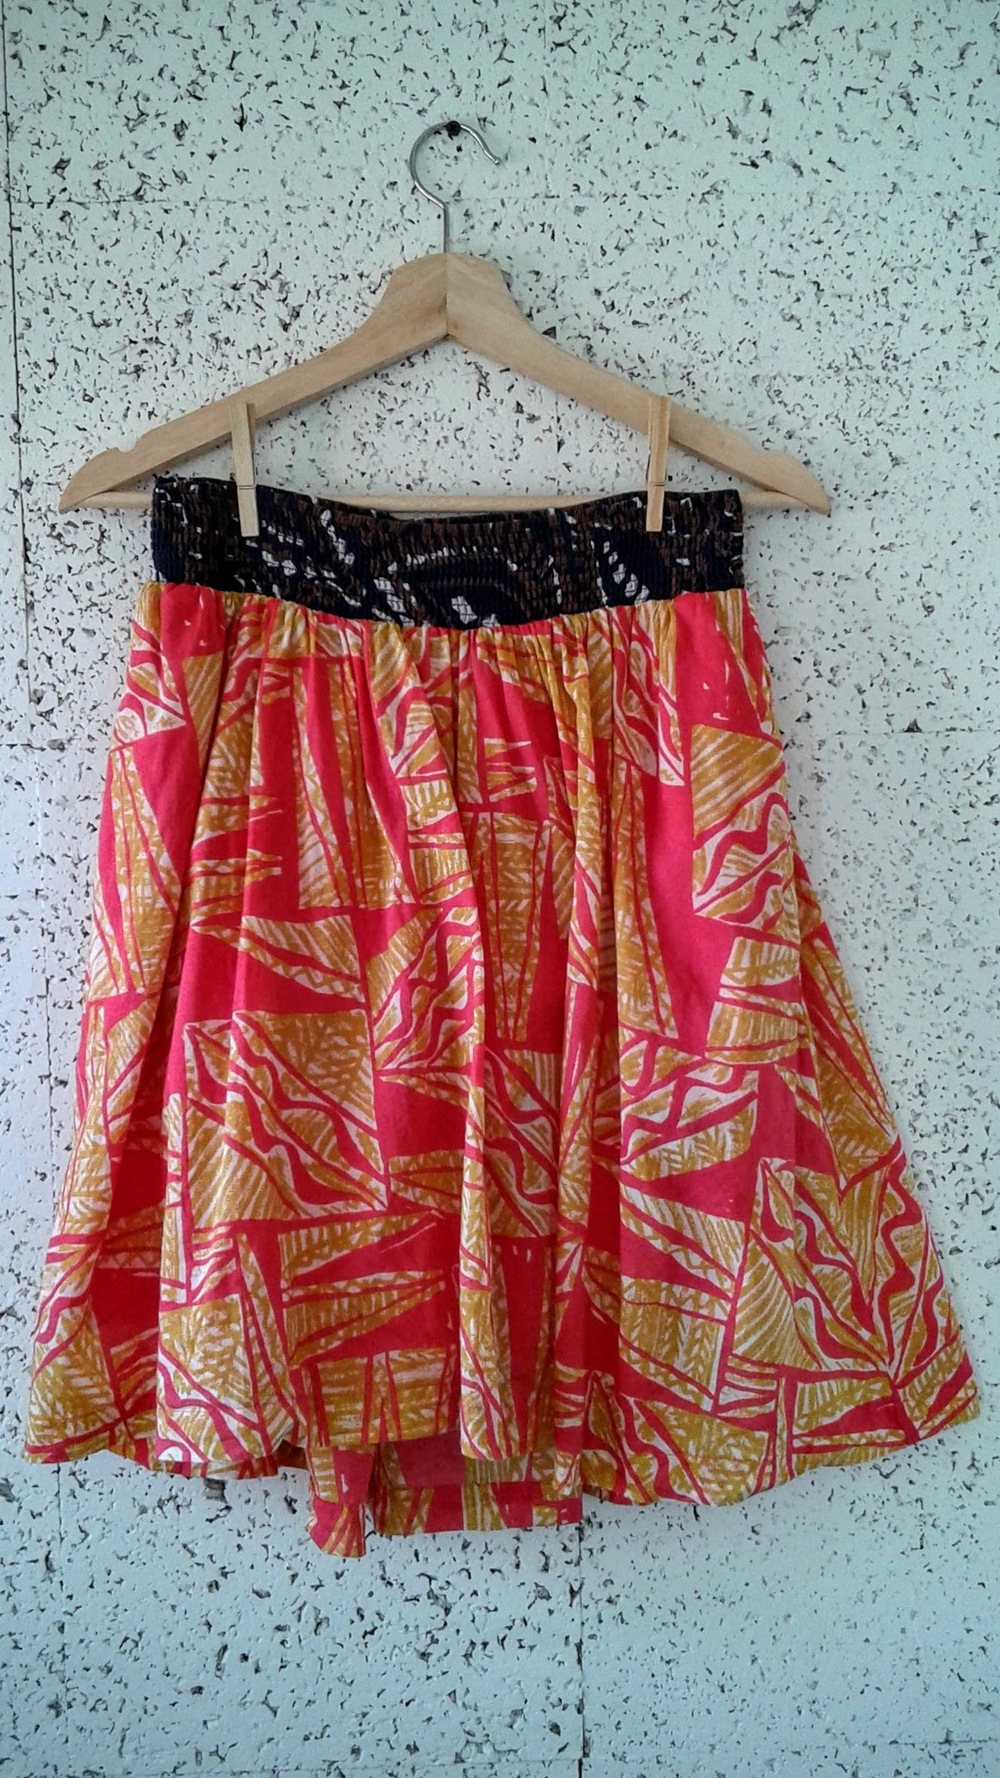 Vanessa Virginia  skirt; Size S, $20